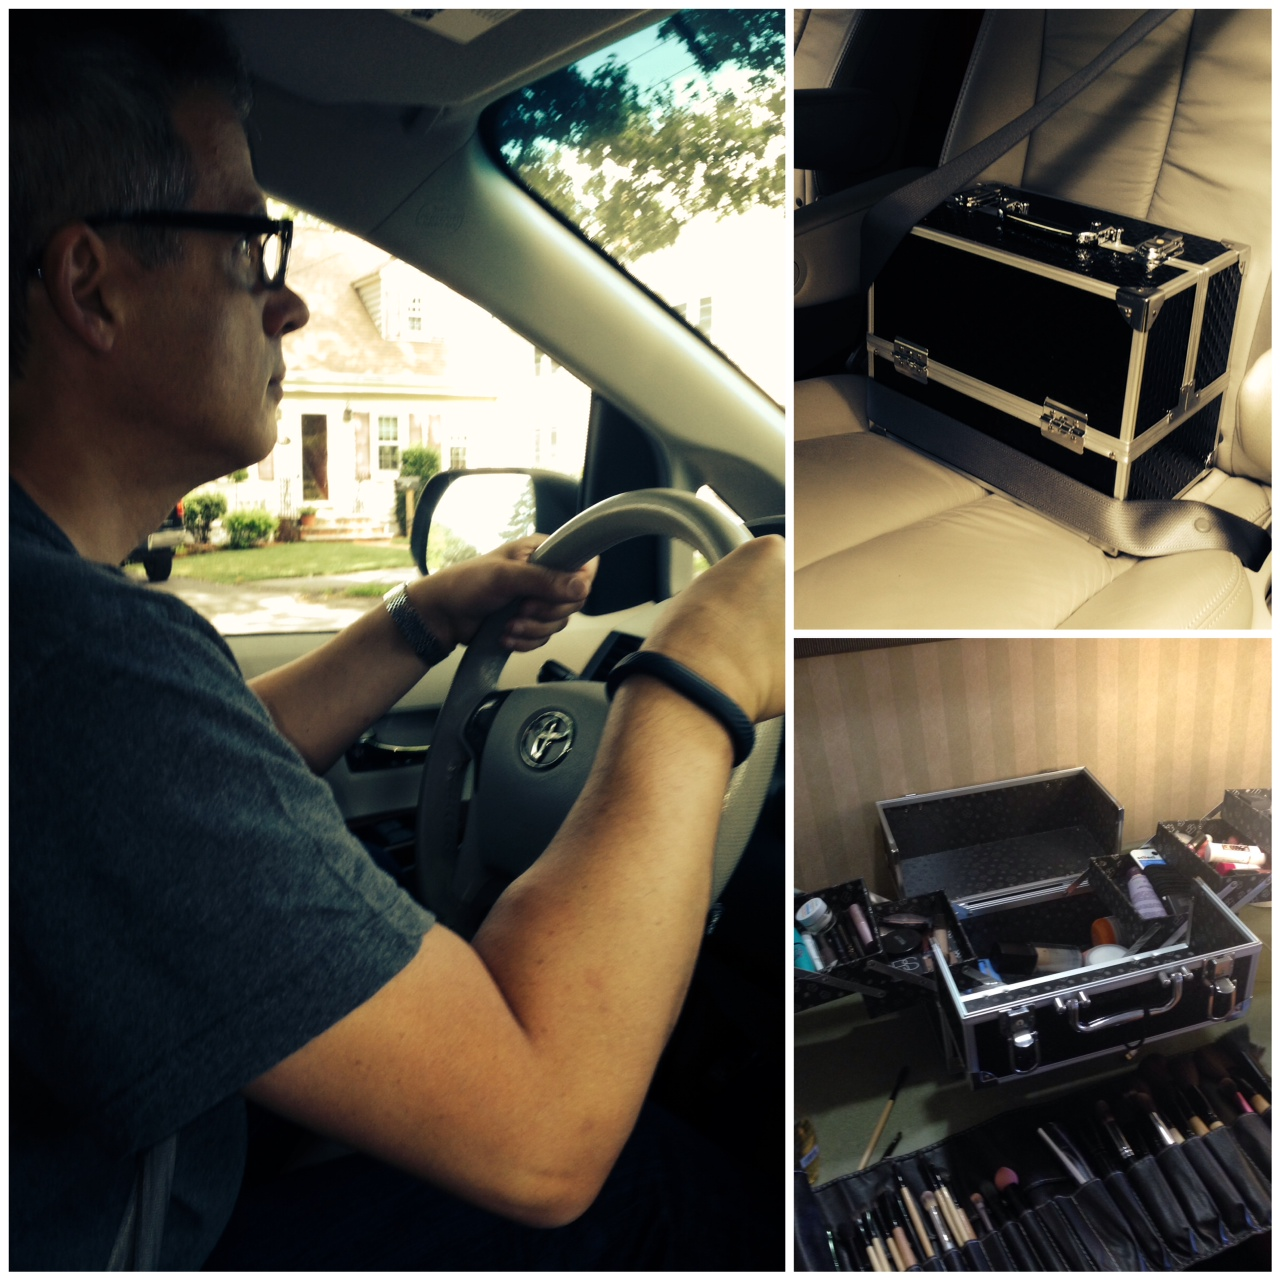 Dad has to be careful driving to protect daughter's make-up kit